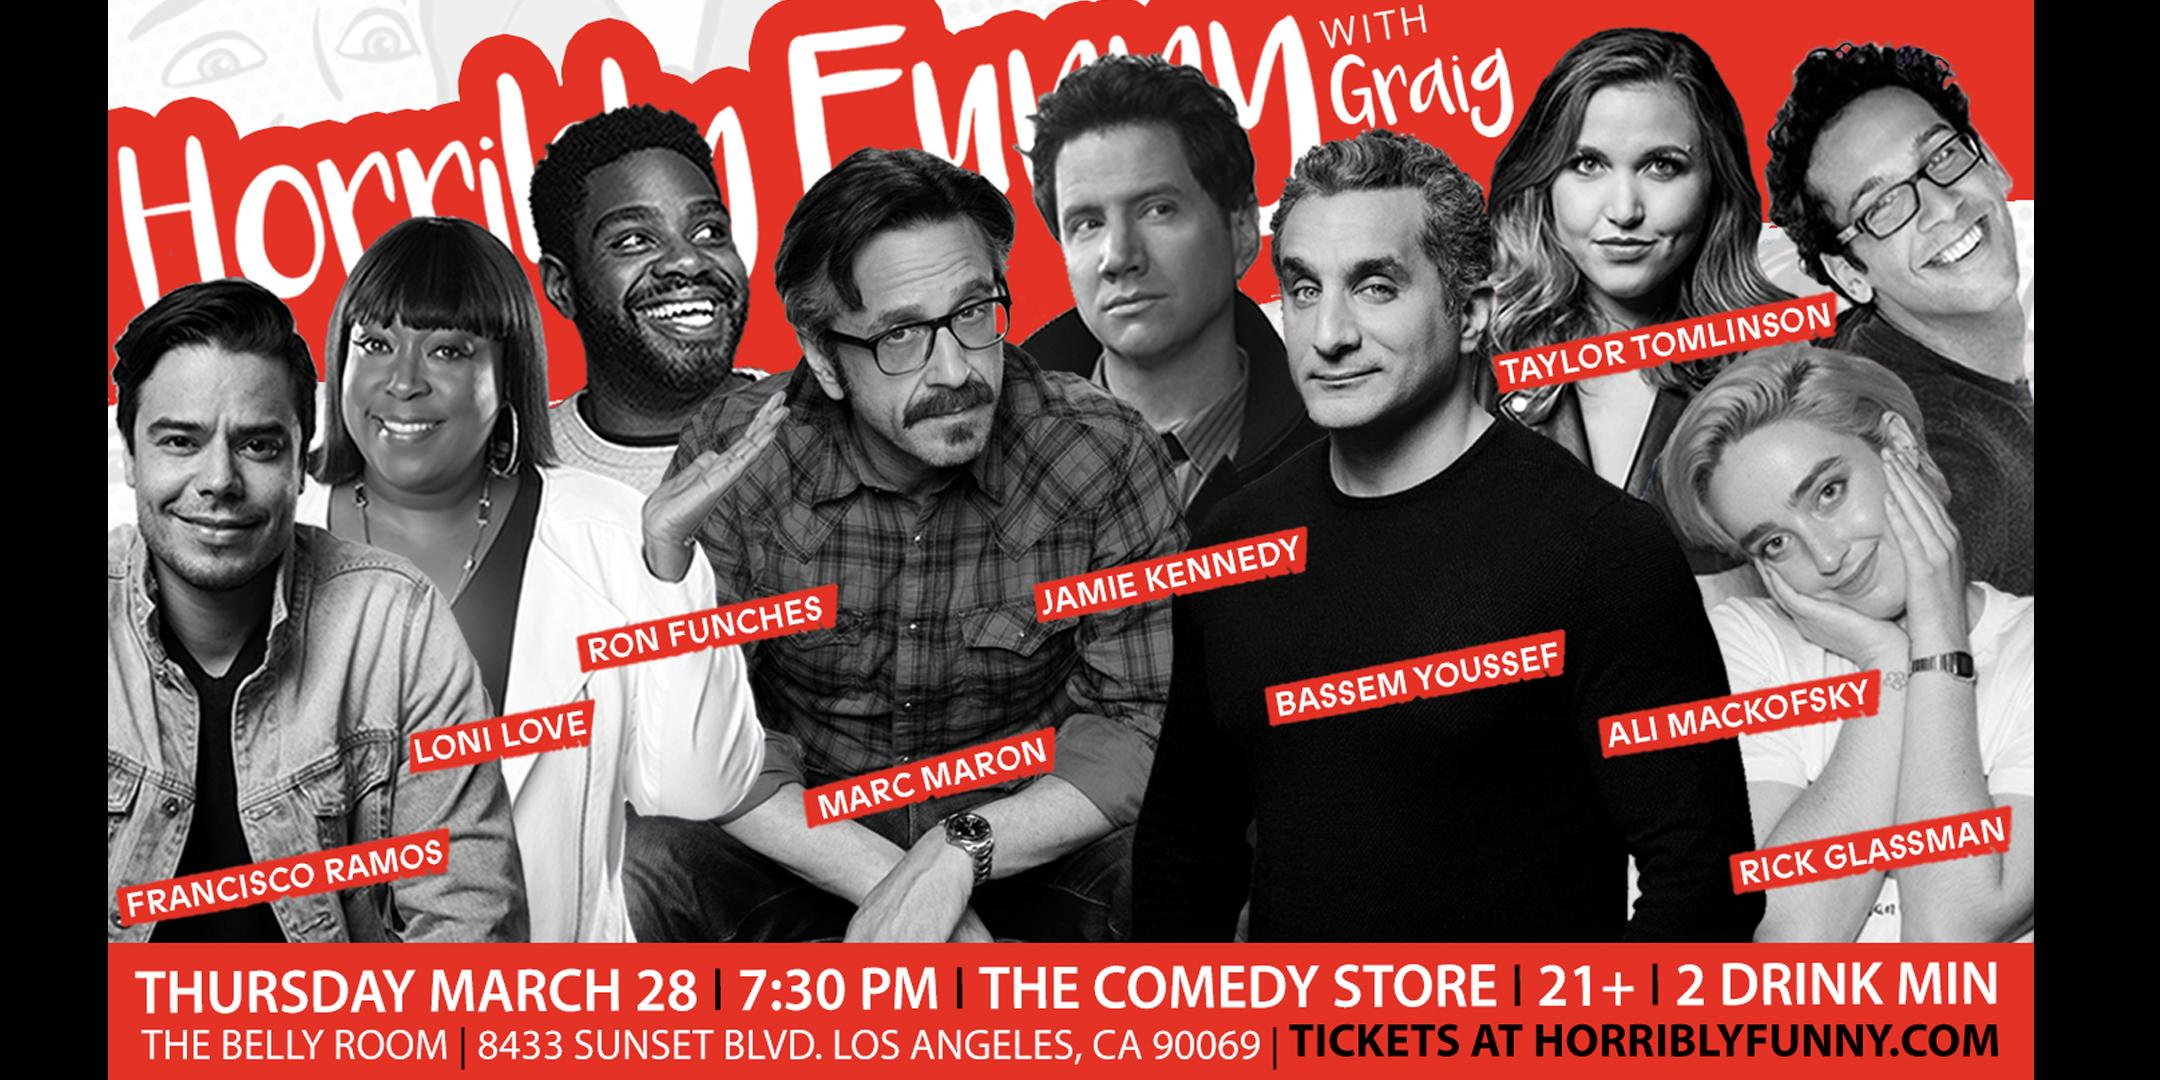 Horribly Funny-Marc Maron, Jamie Kennedy, Bassem Youssef, Loni Love +more!